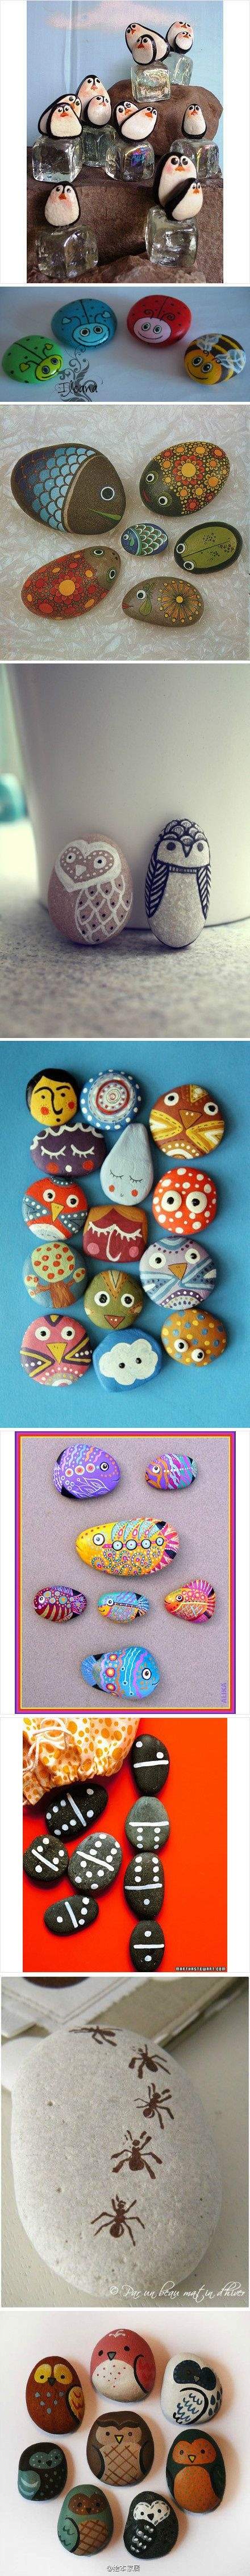 Painted rocks - too cute